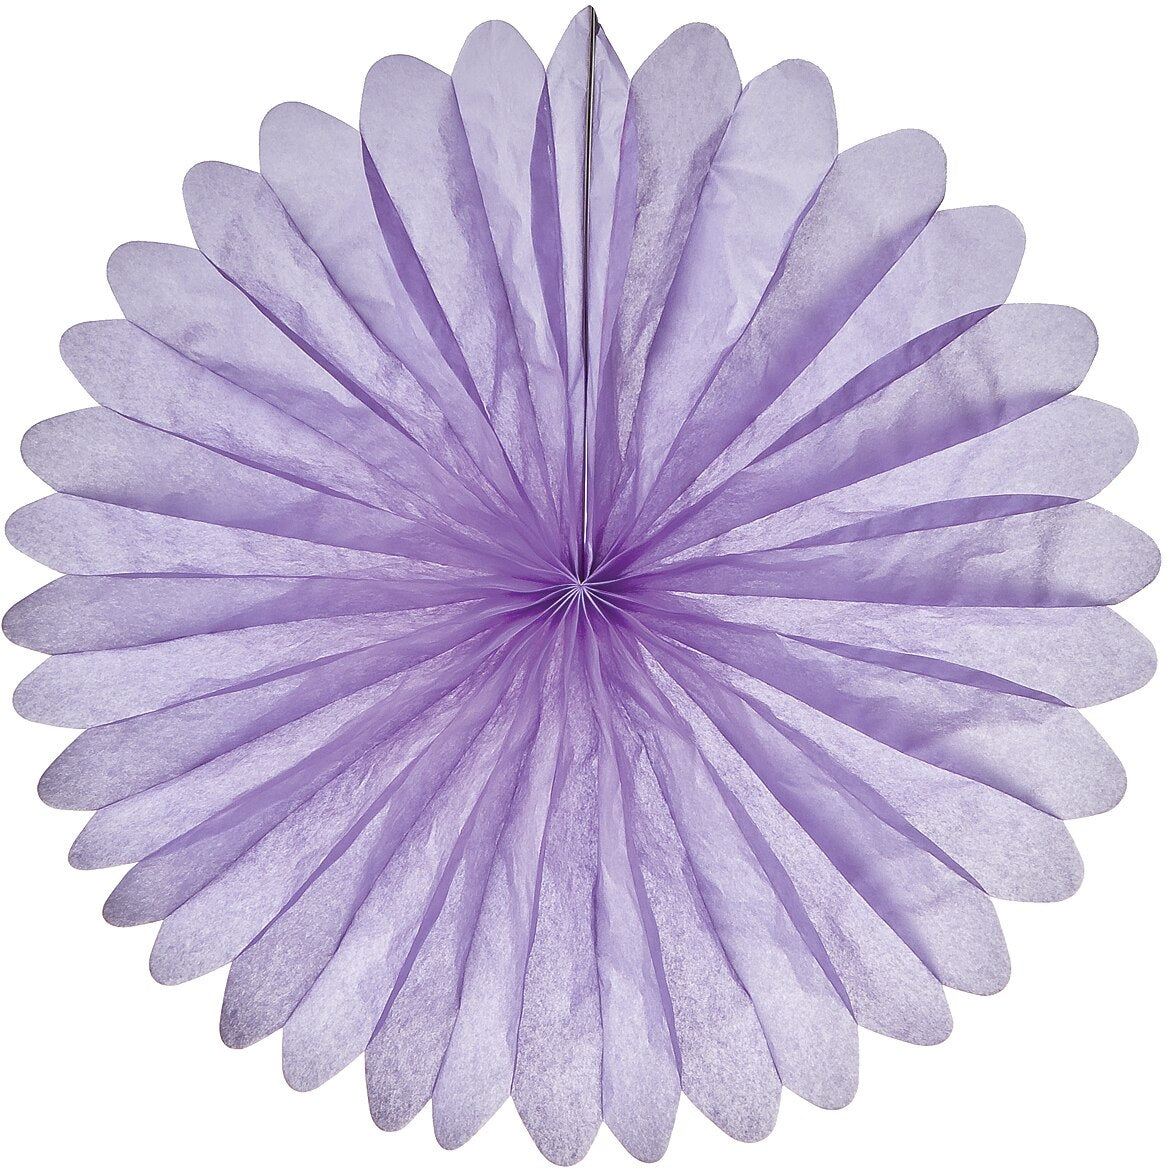 BLOWOUT Lilac Purple 19 Inch Hanging Paper Fan - PaperLanternStore.com - Paper Lanterns, Decor, Party Lights & More